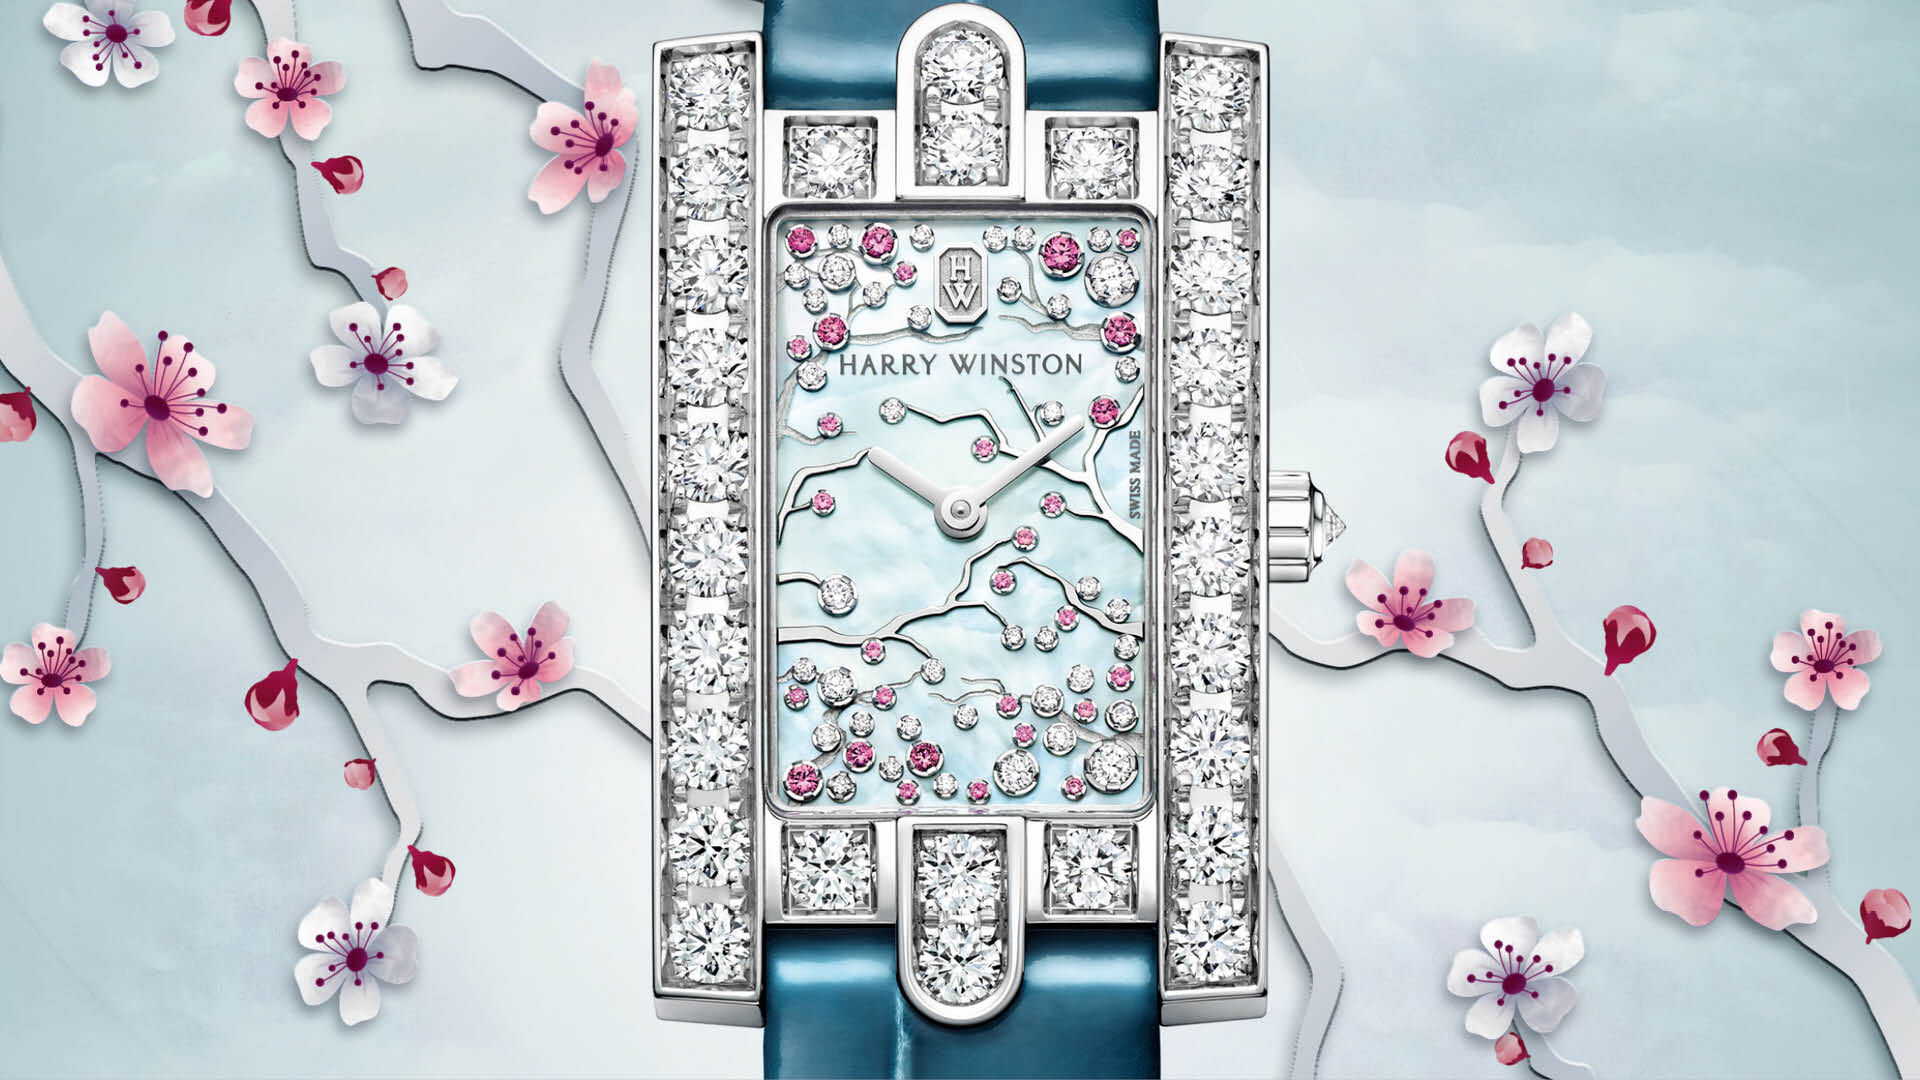 Natural Themes Reign In Harry Winston's Latest Timepieces